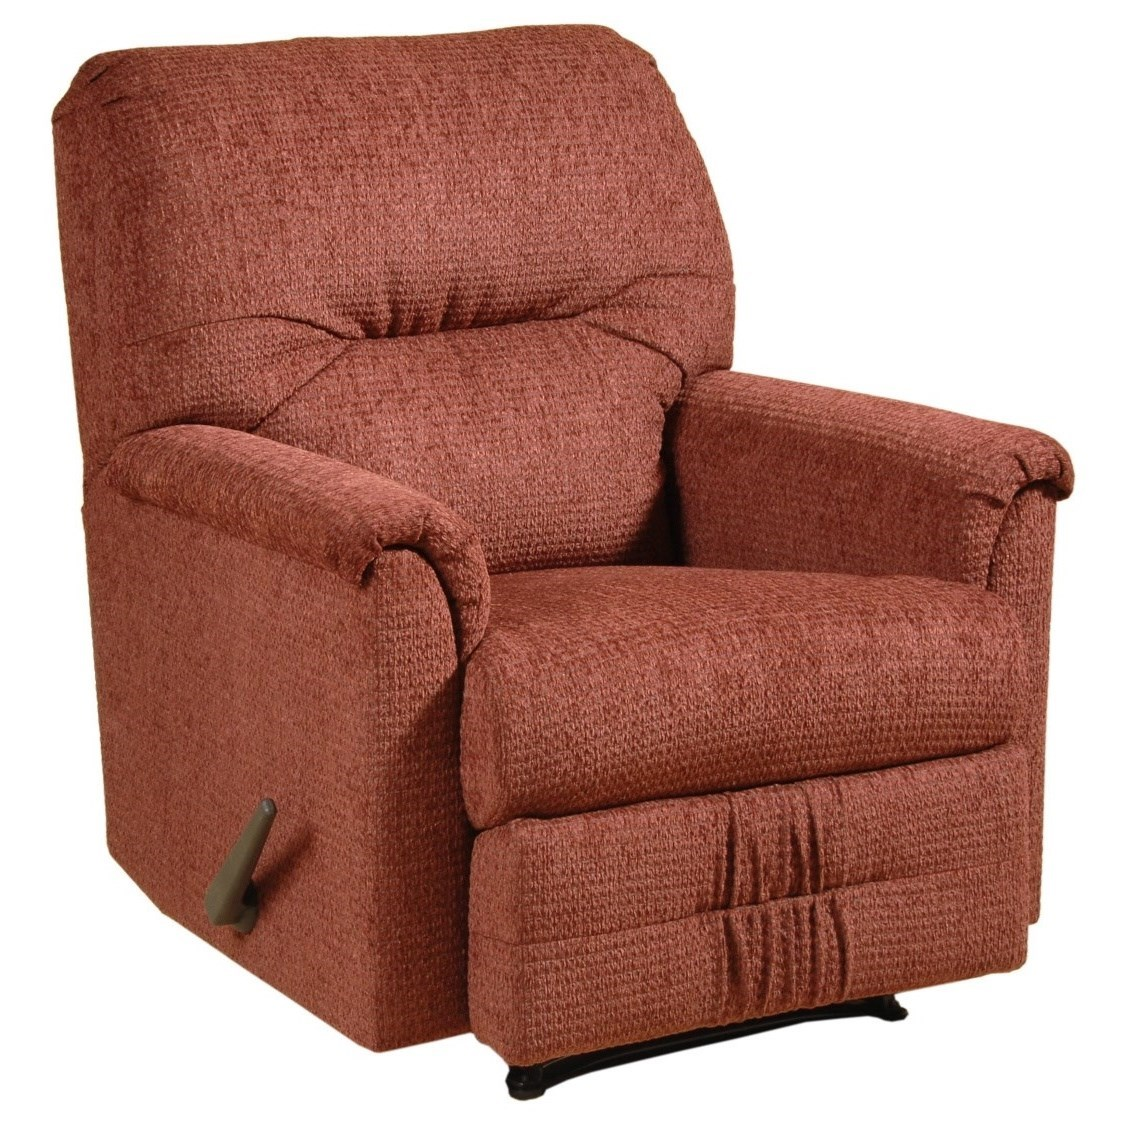 100 Recliner by Serta Upholstery by Hughes Furniture at Rooms for Less